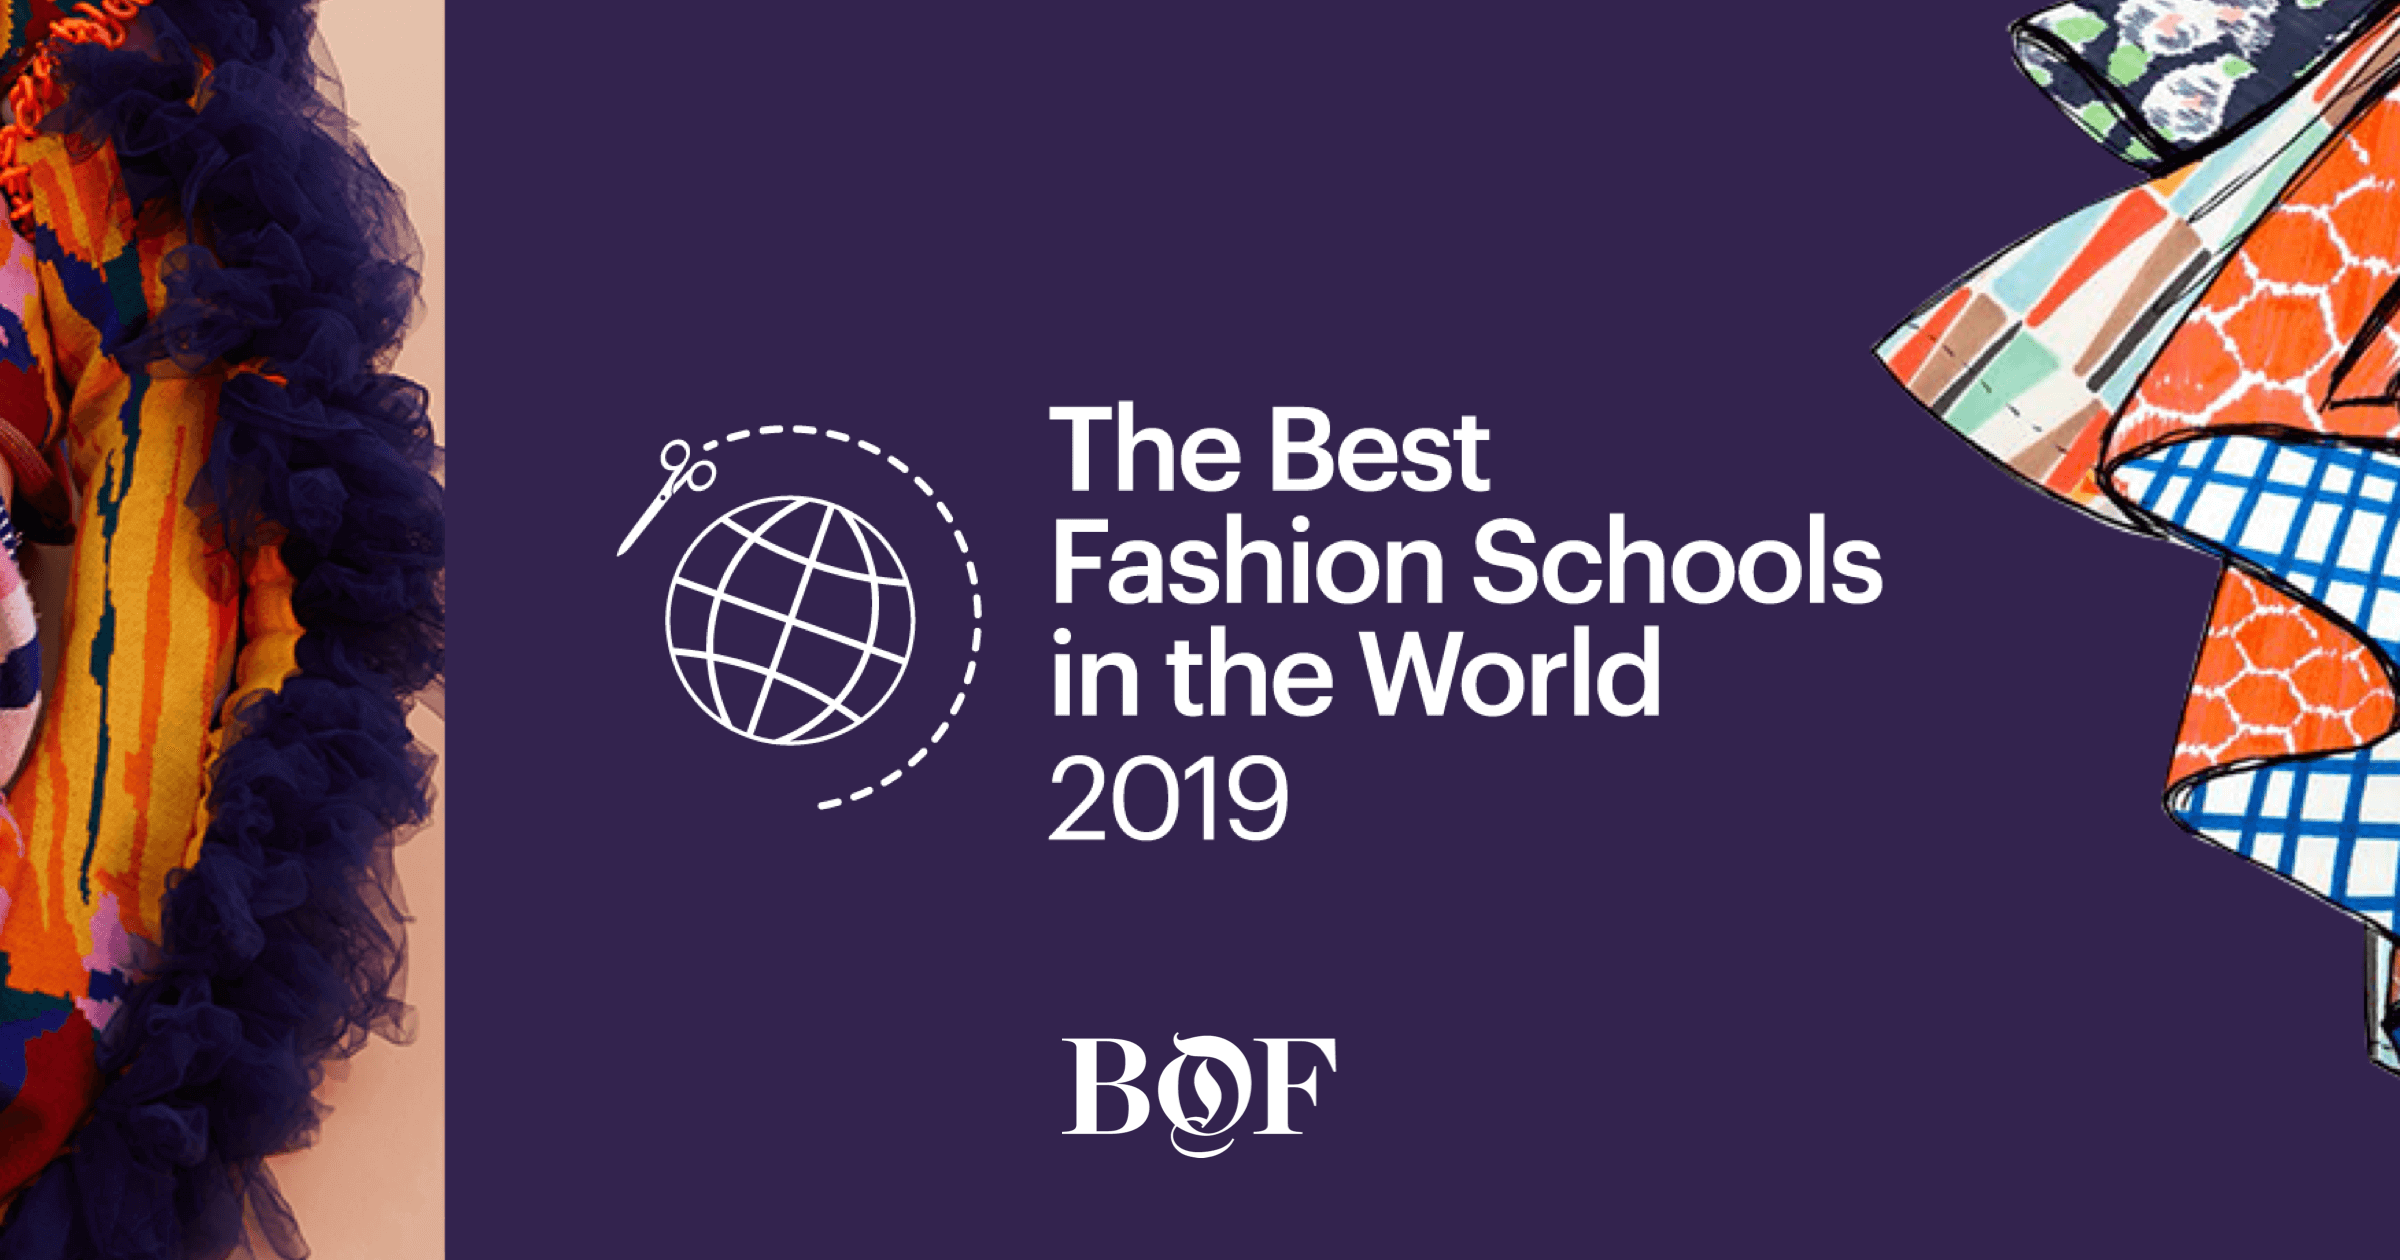 The Best Fashion Schools In The World 2019